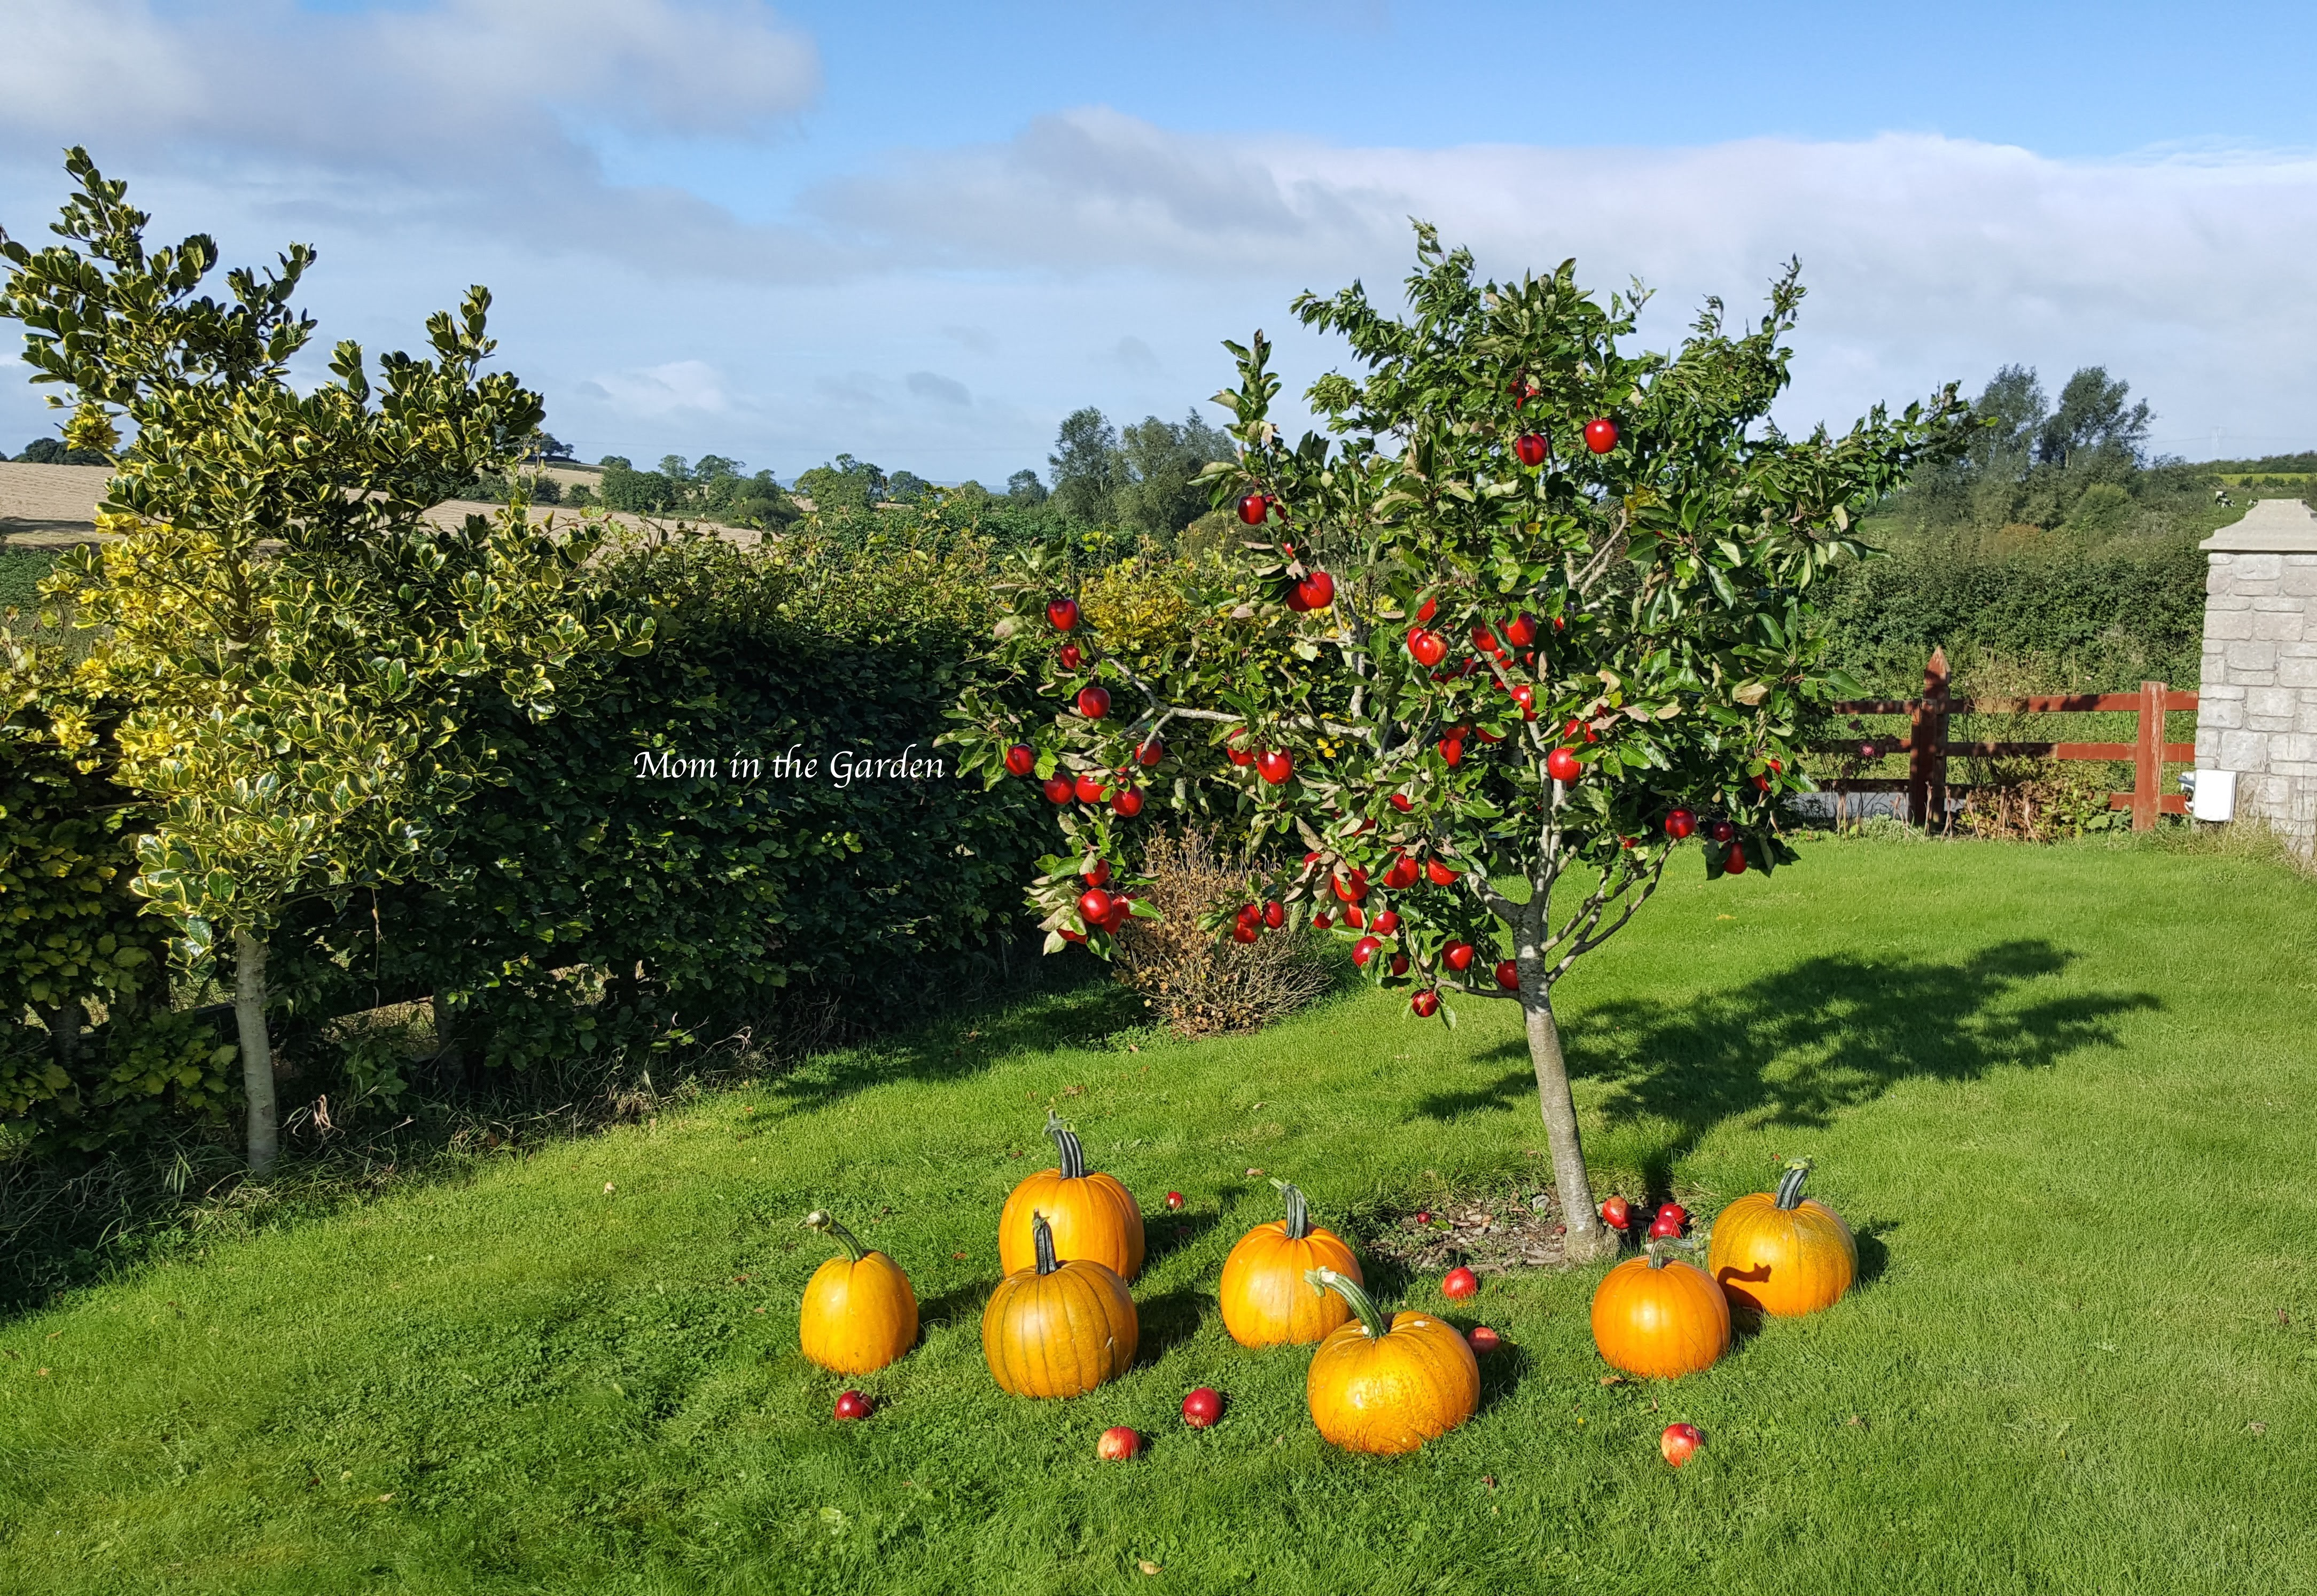 pumpkins and red apples